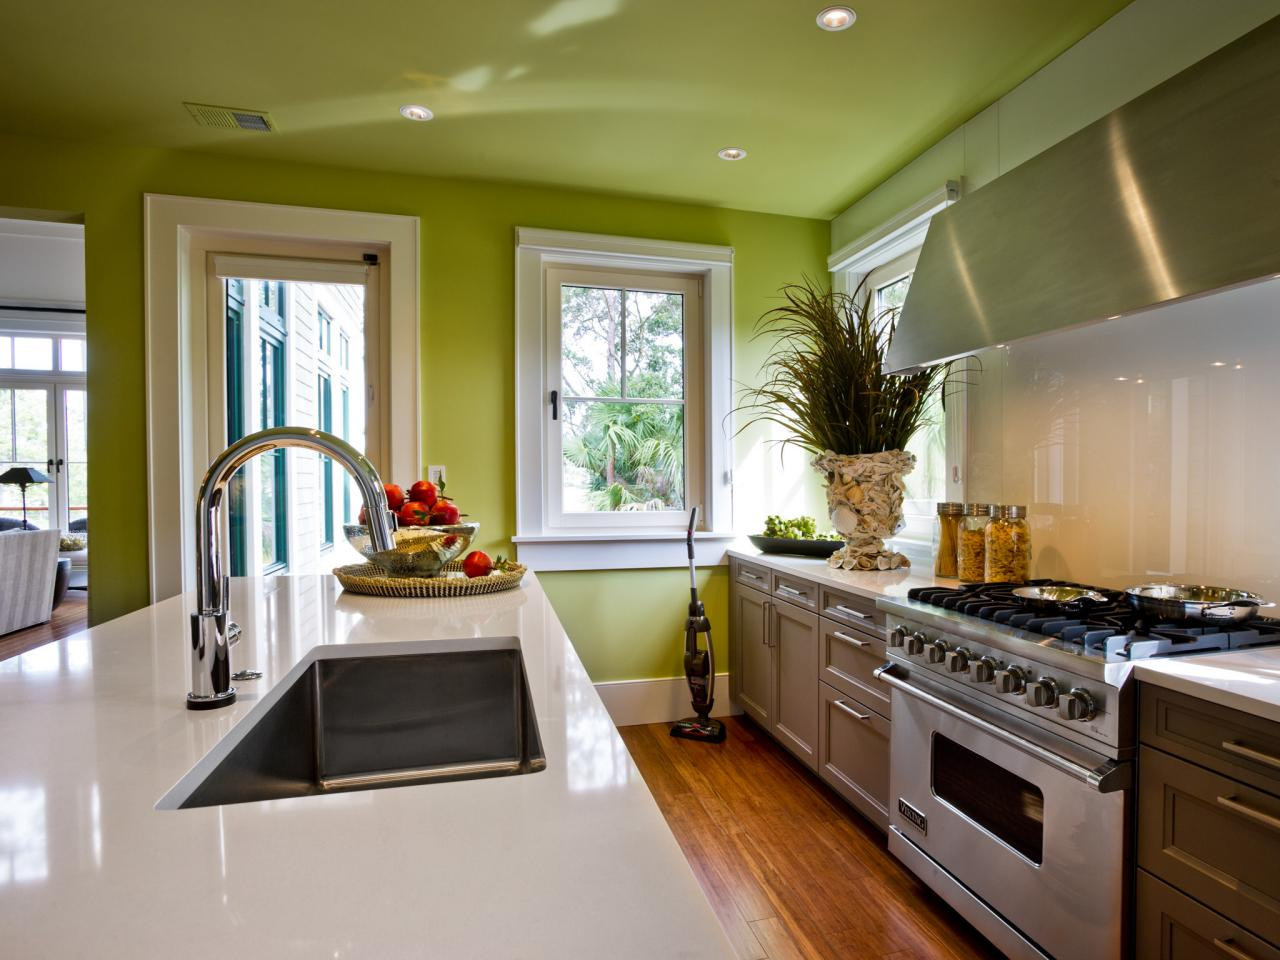 Paint colors for kitchens pictures ideas tips from for Good colors to paint your room